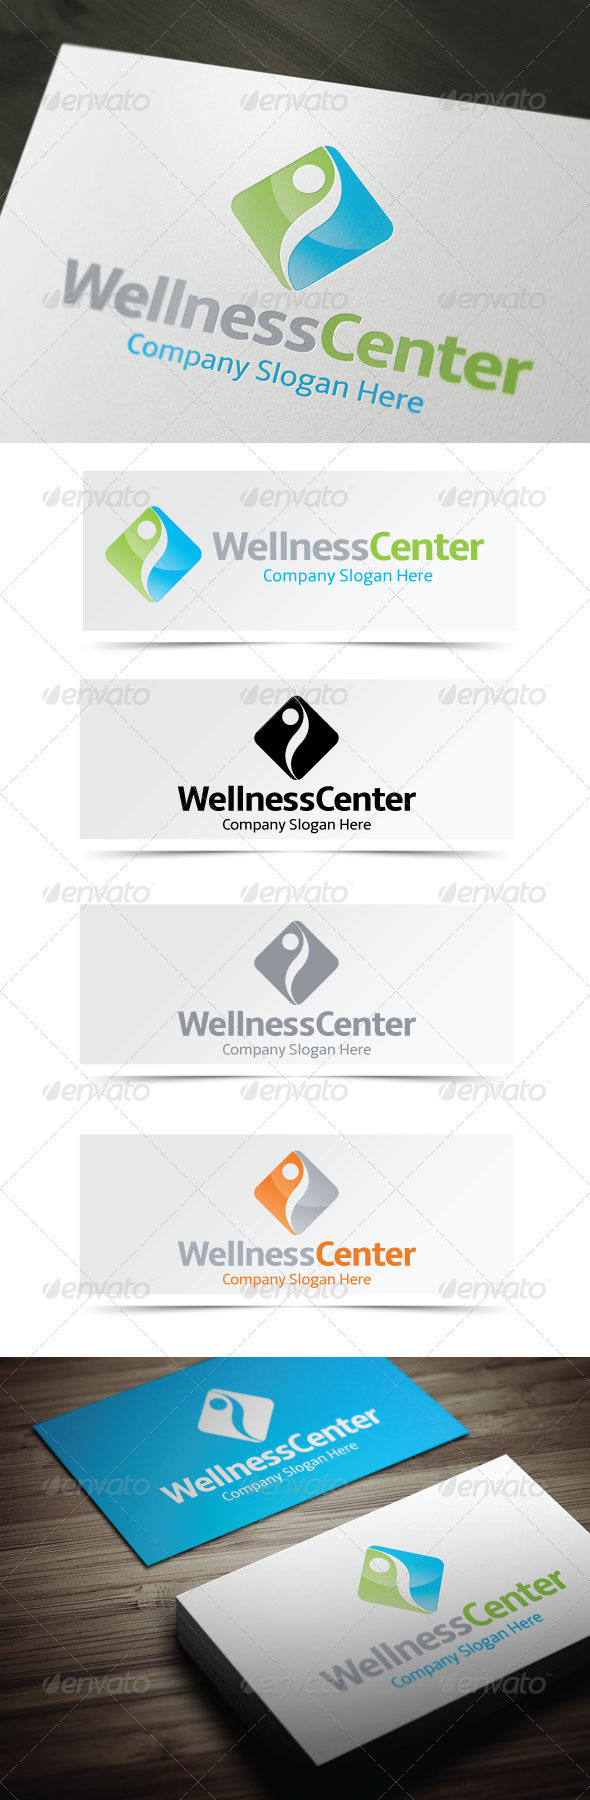 Wellness Center Logo - Vector Abstract